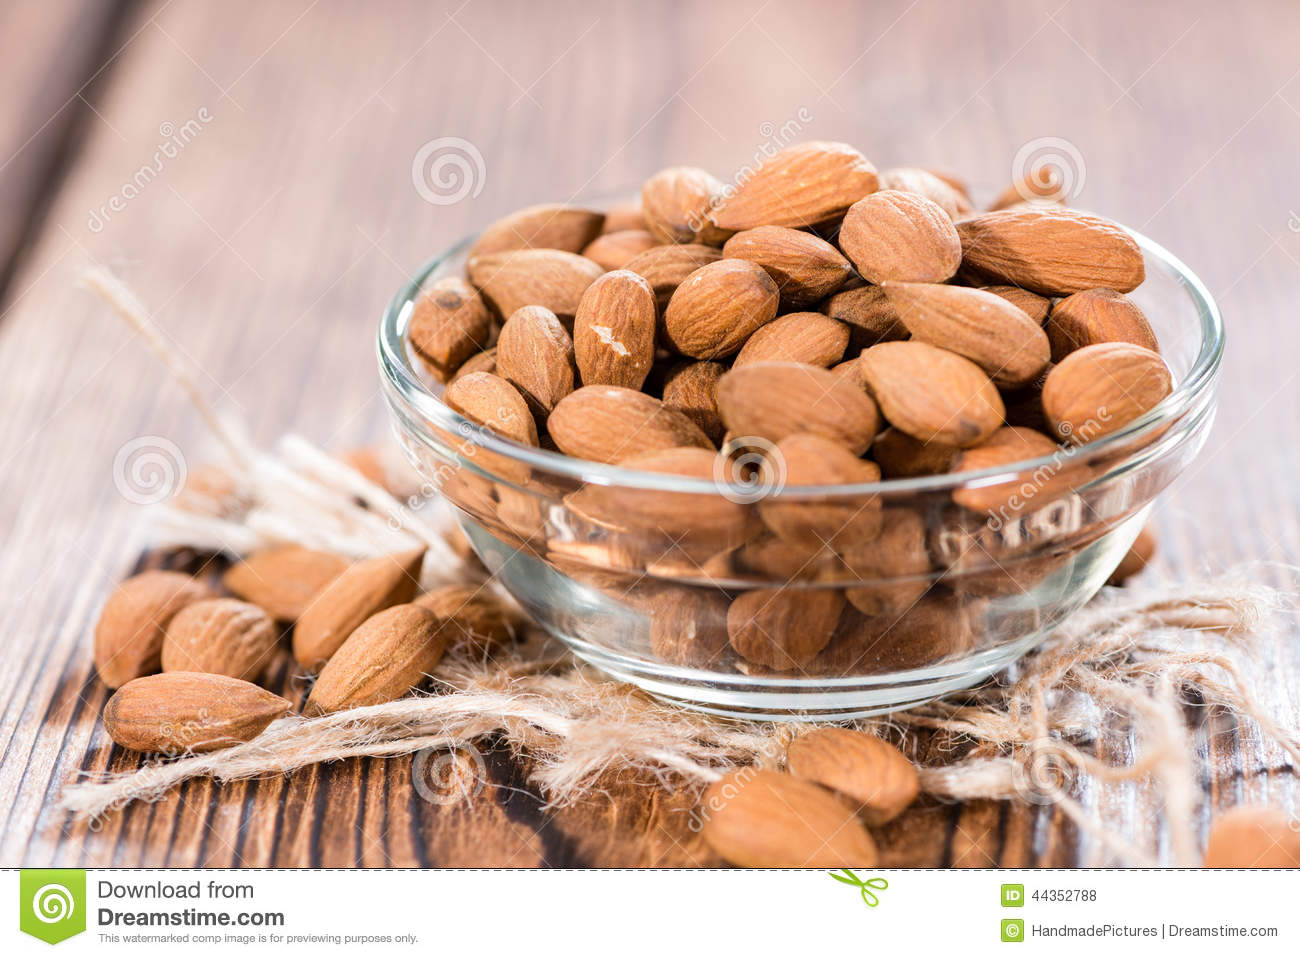 Portion of dried Almonds